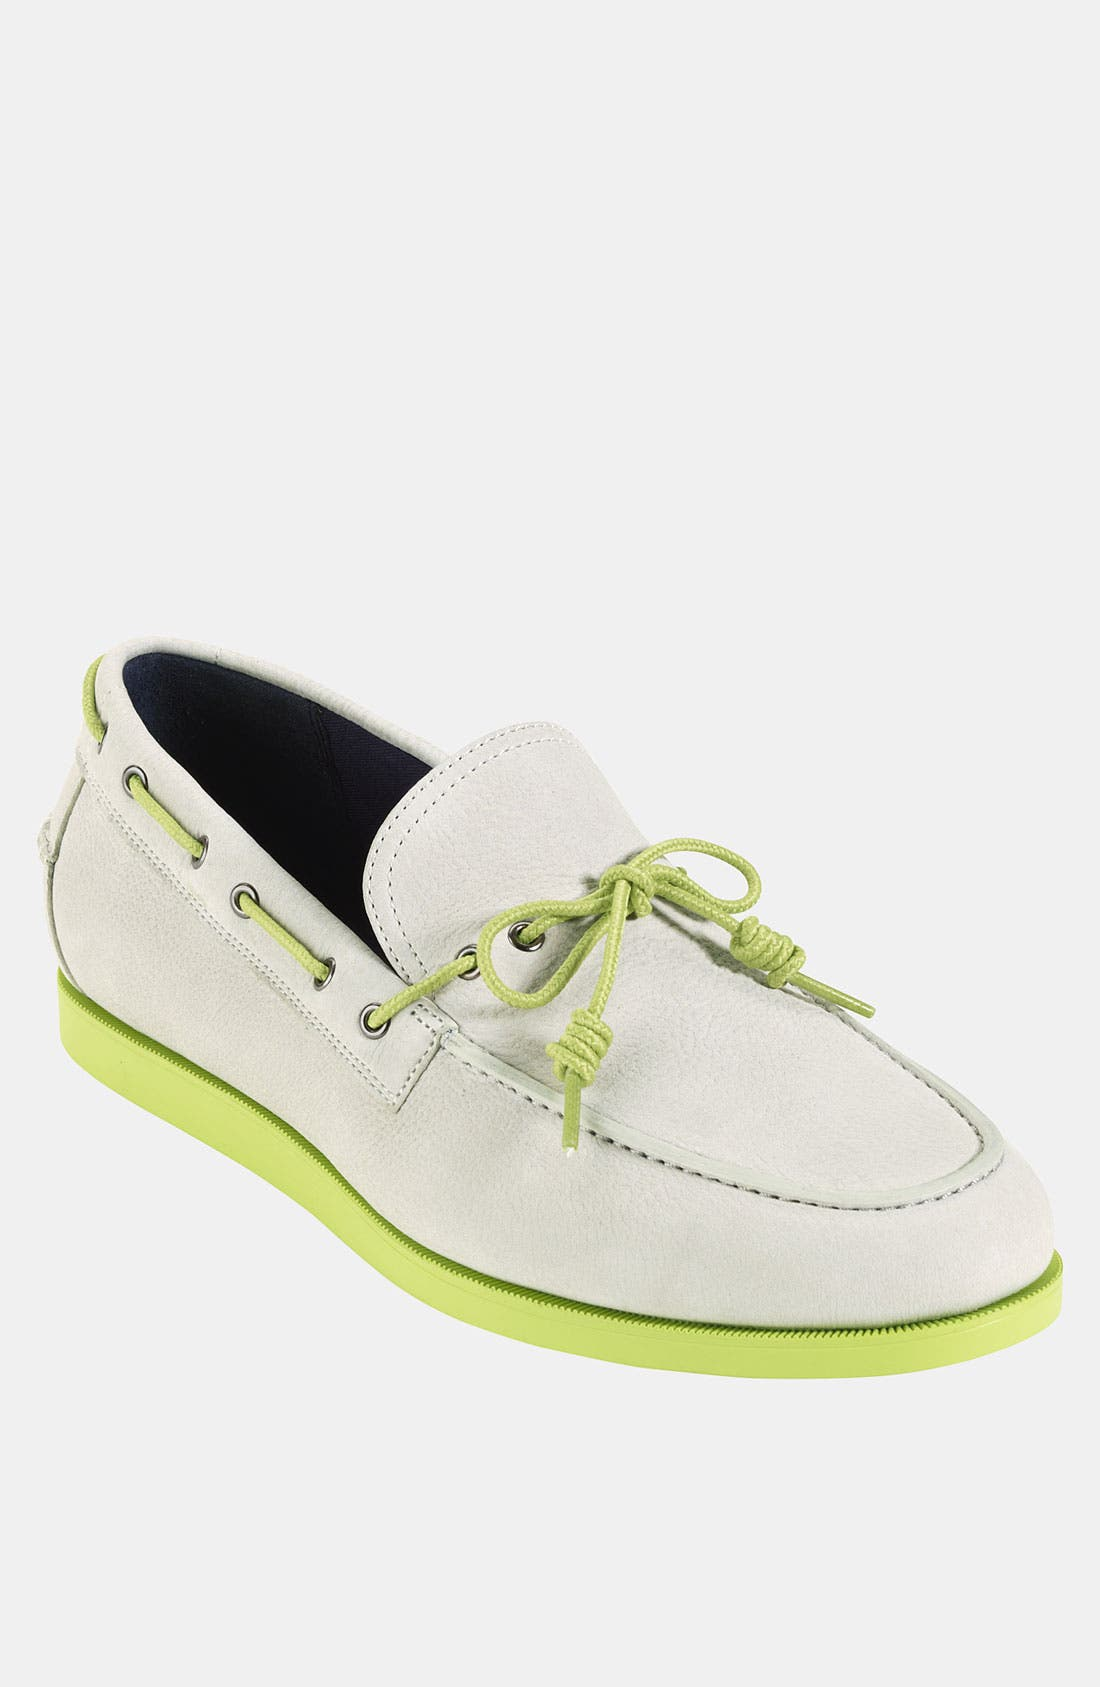 Main Image - Cole Haan 'Air Mason' Boat Shoe   (Men)